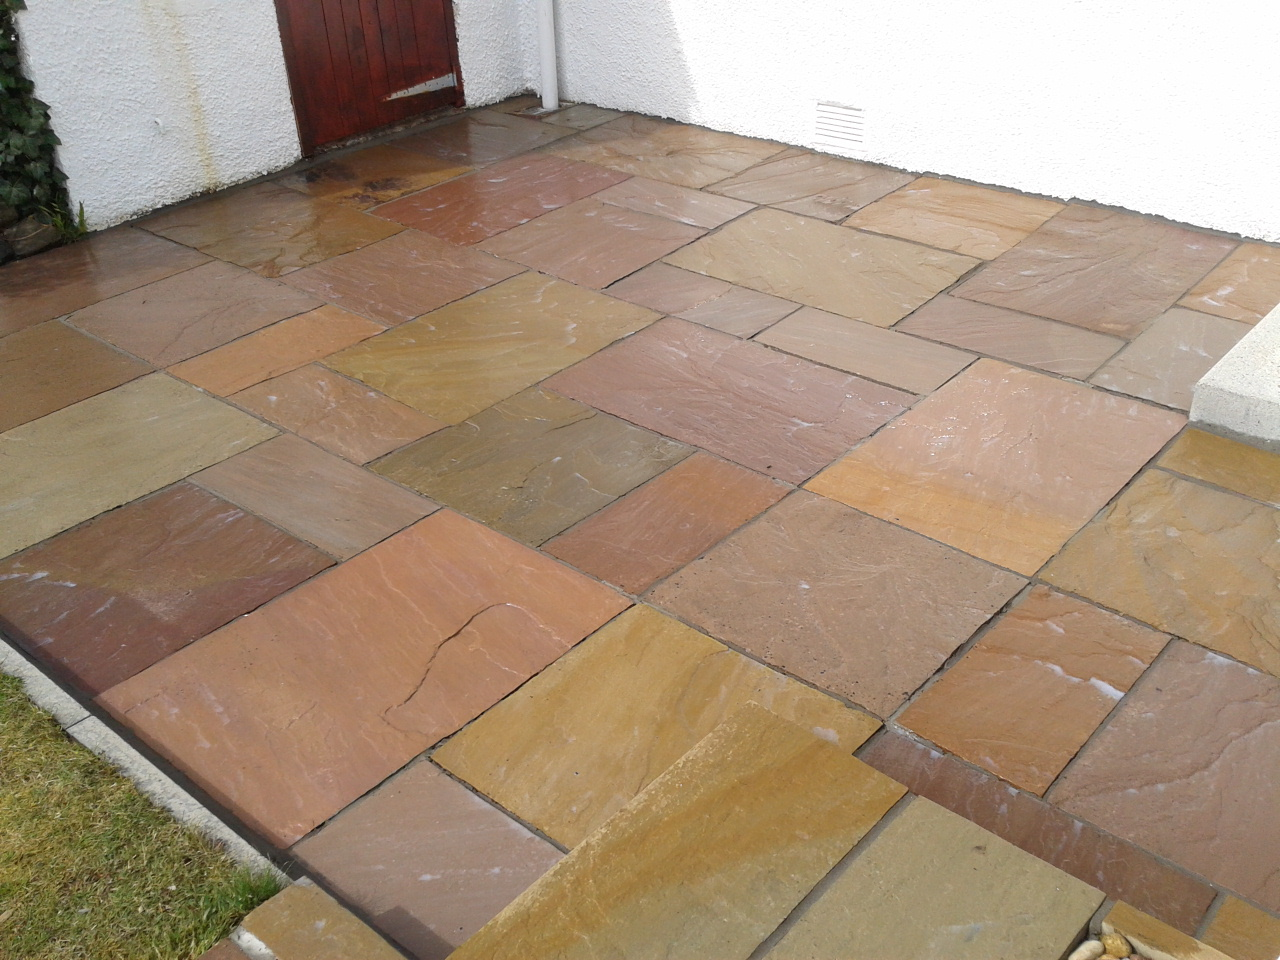 sandstone paving after